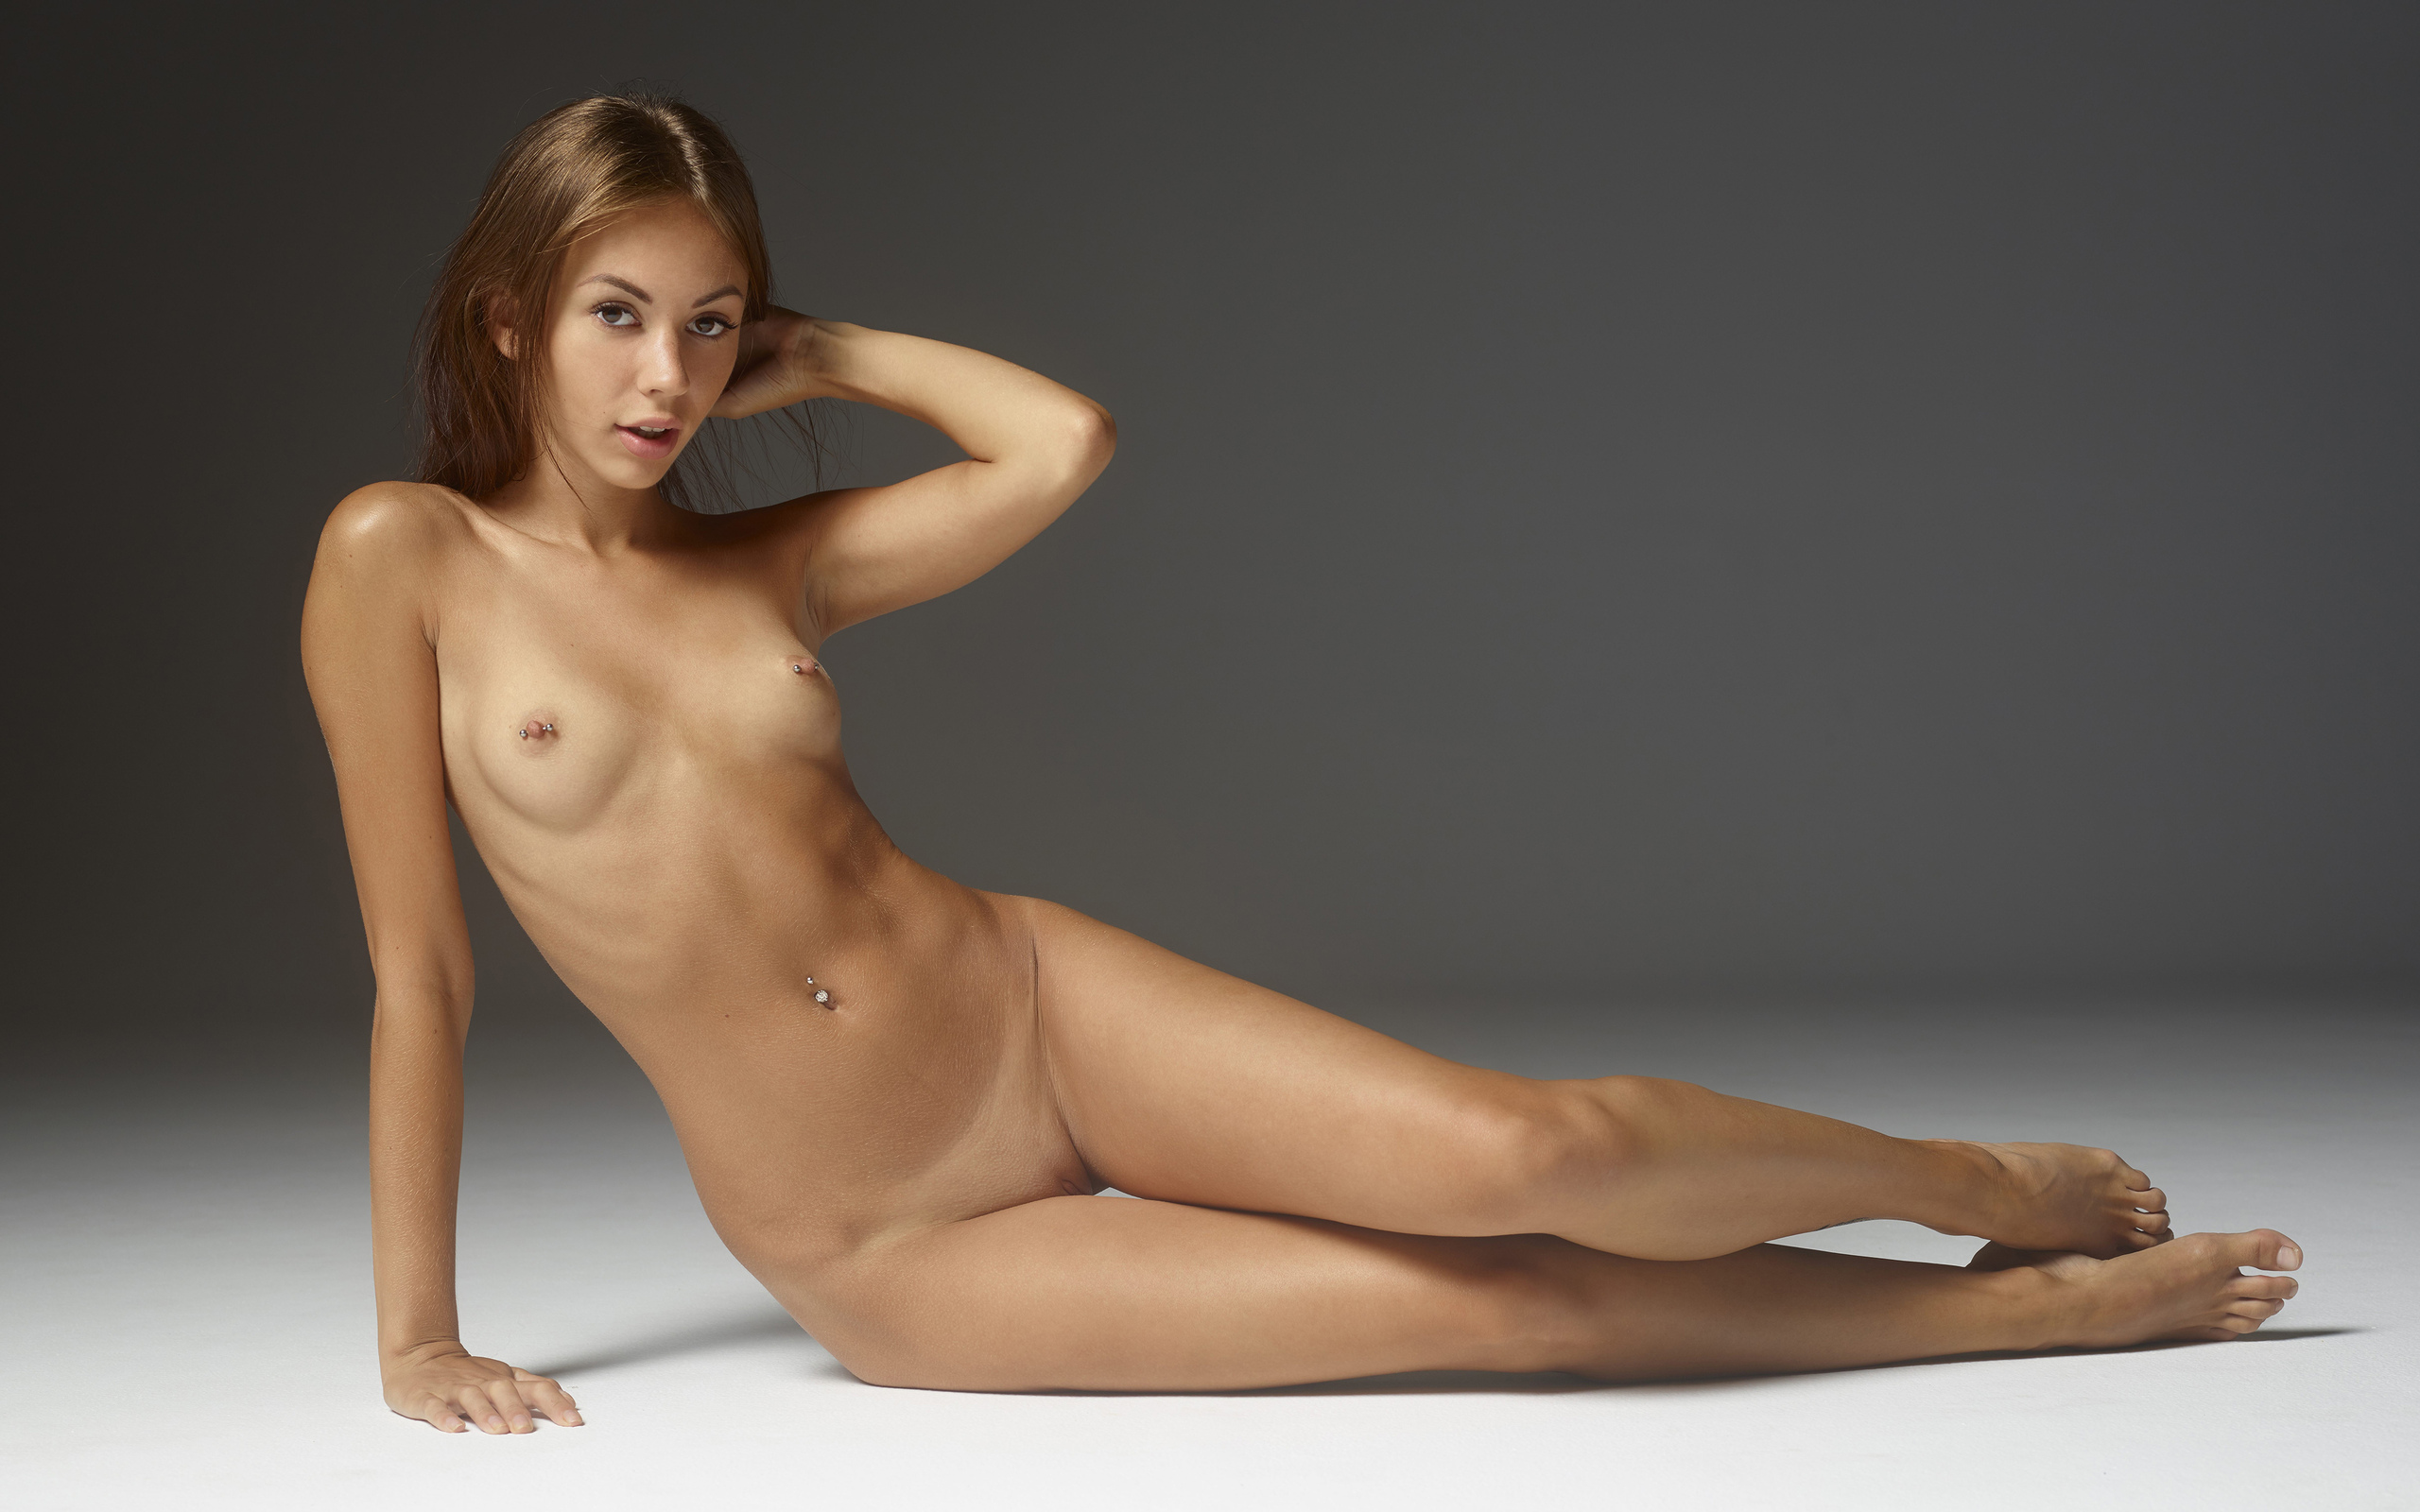 nude-young-female-pictures-men-and-women-having